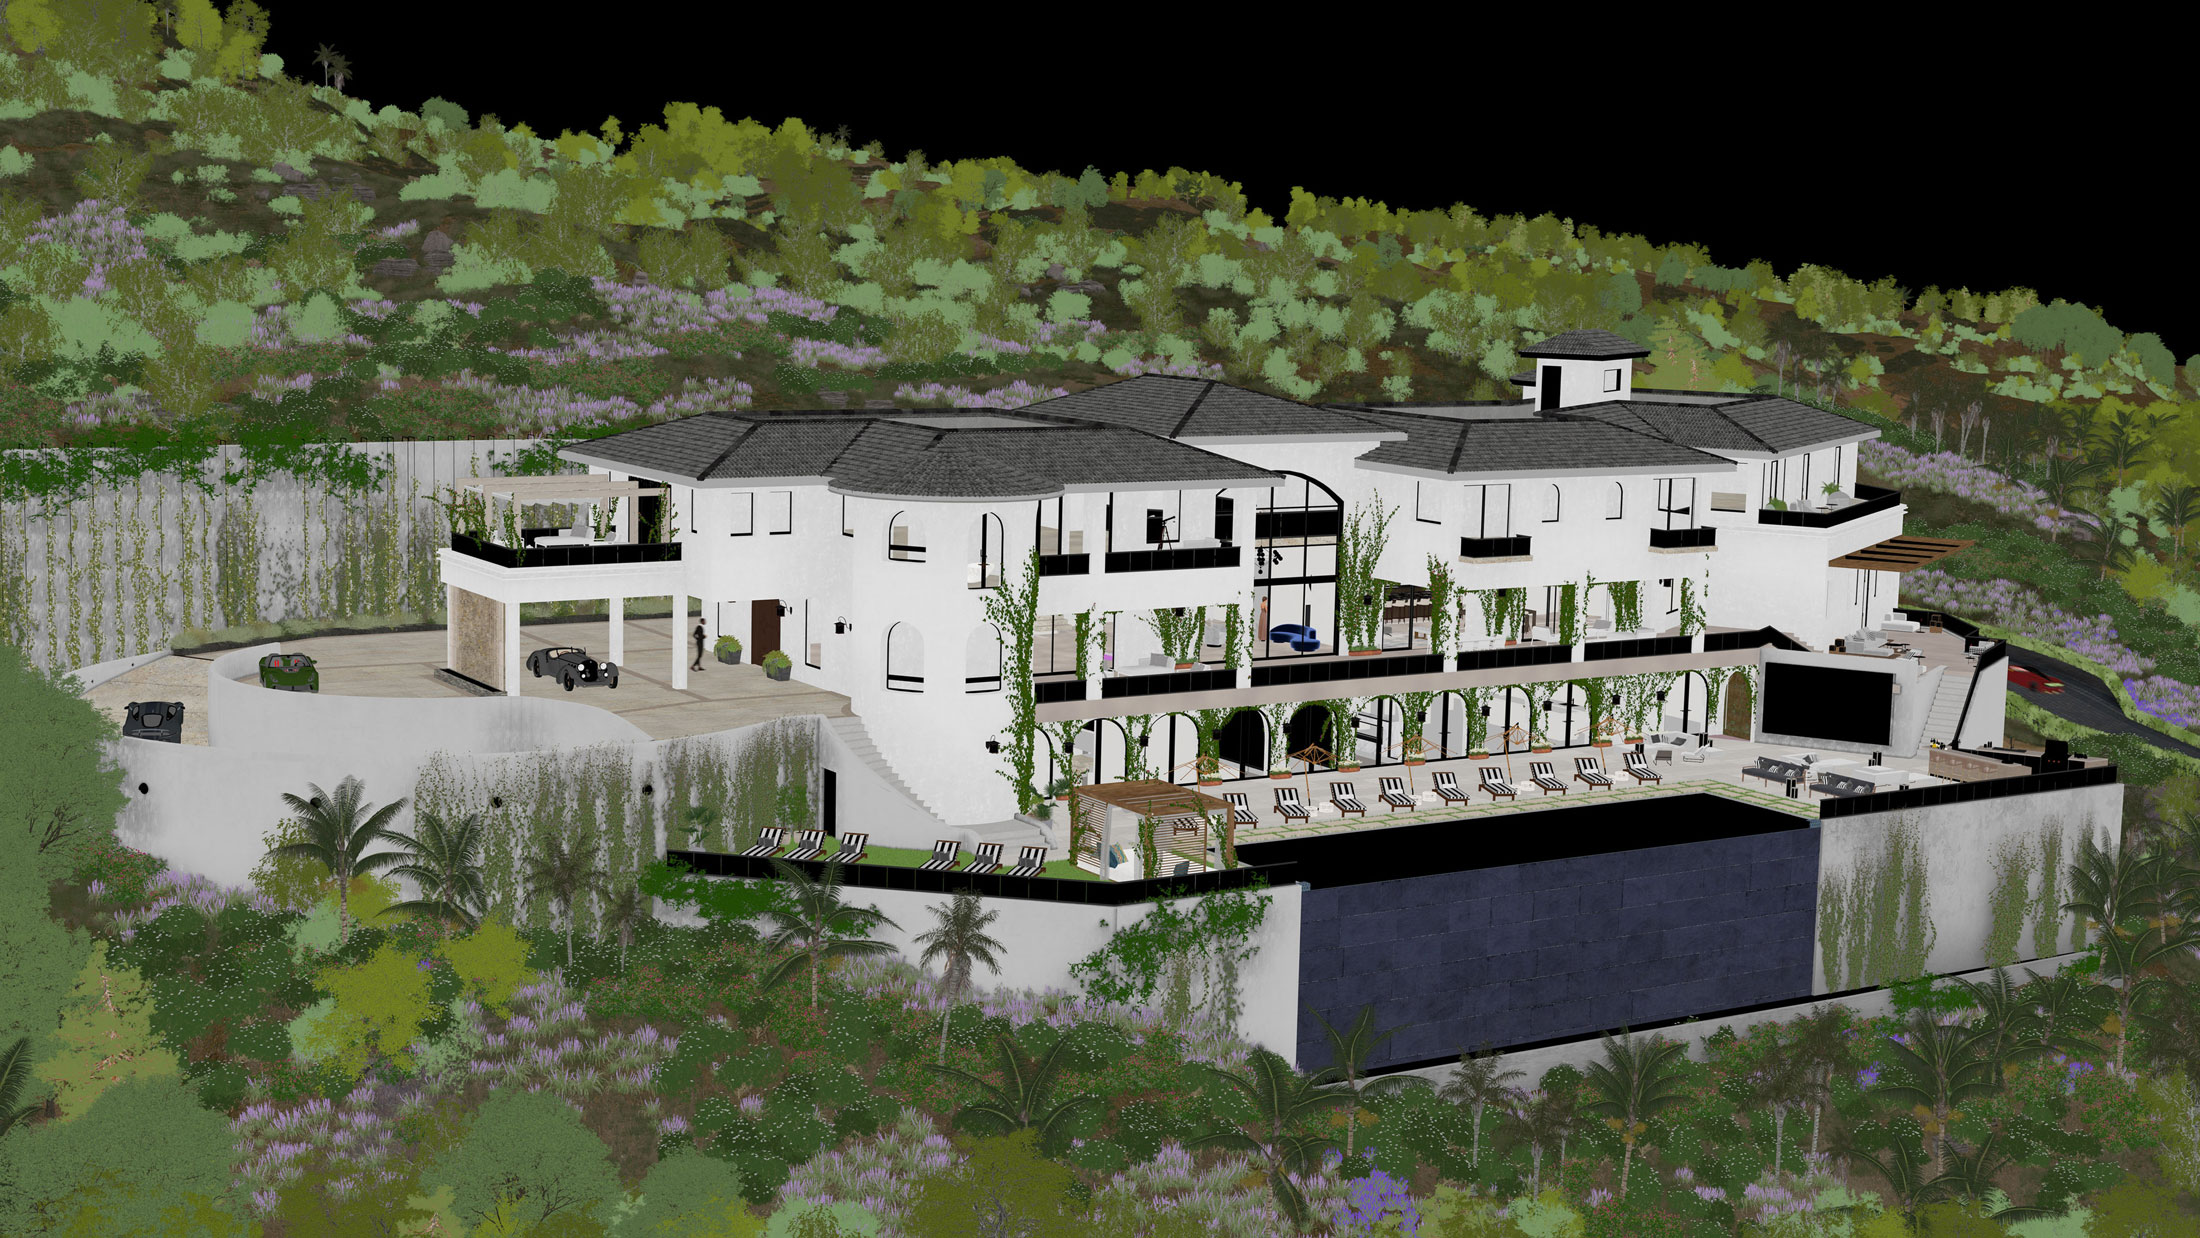 Architectural Rendering process of an aerial view of the 10697 Somma Way project located in Los Angeles, California